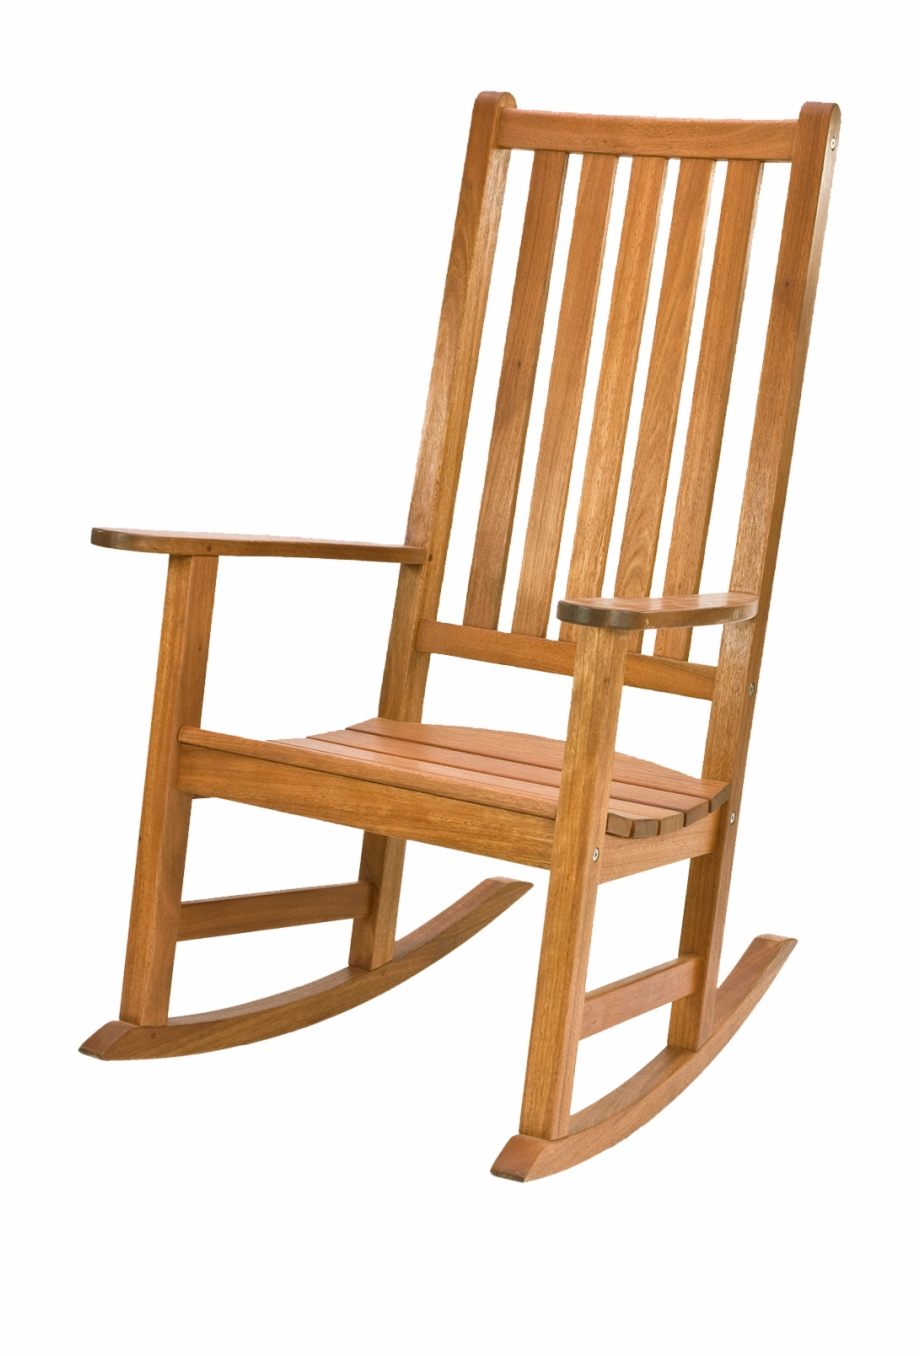 Picture of: Rocking Chair Png Rocking Chairs Transparent Transparent Png Download 2663995 Vippng